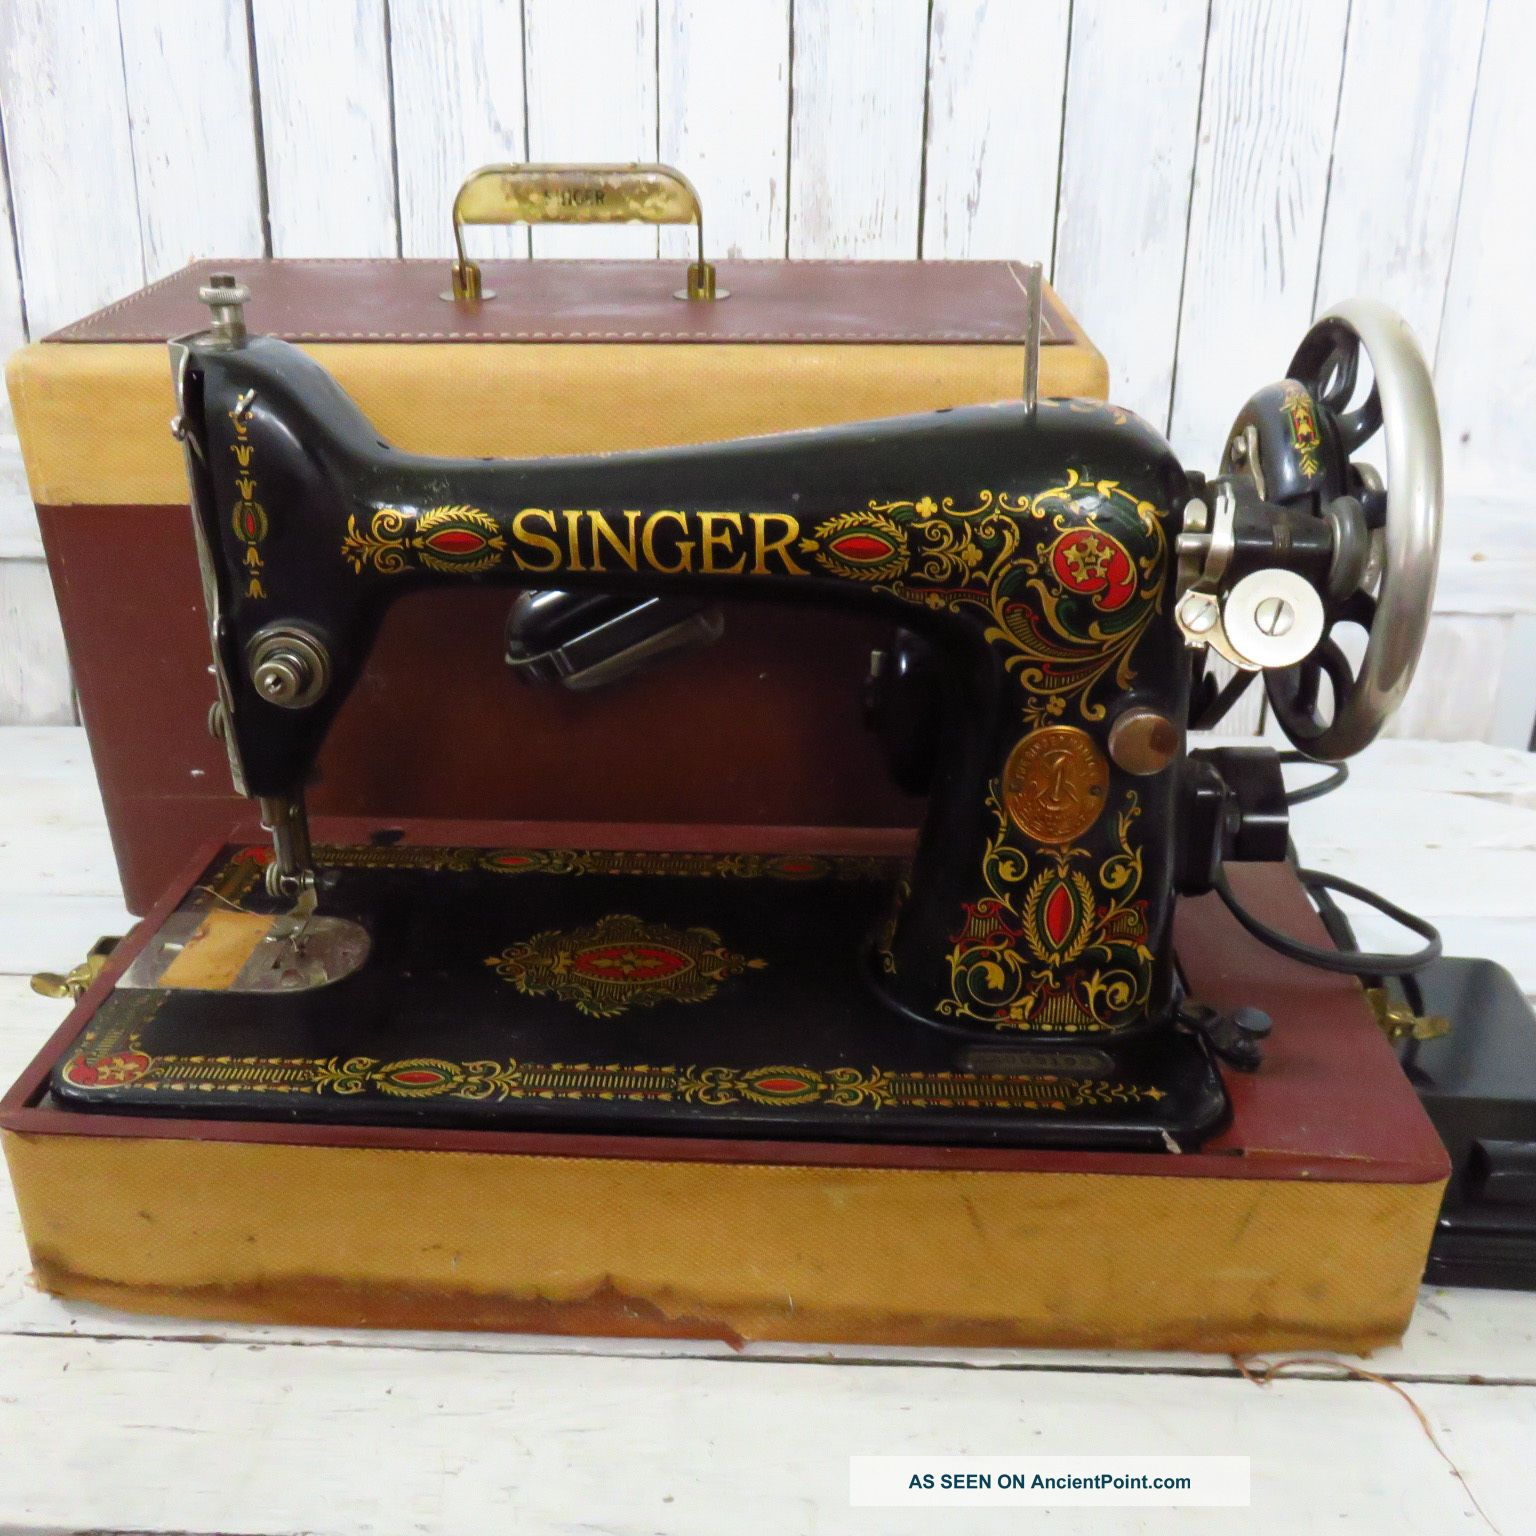 Antique Singer Sewing Machine Model 66 Red Eye 1924 W/ Case Aa069103 Vintage Sewing Machines photo